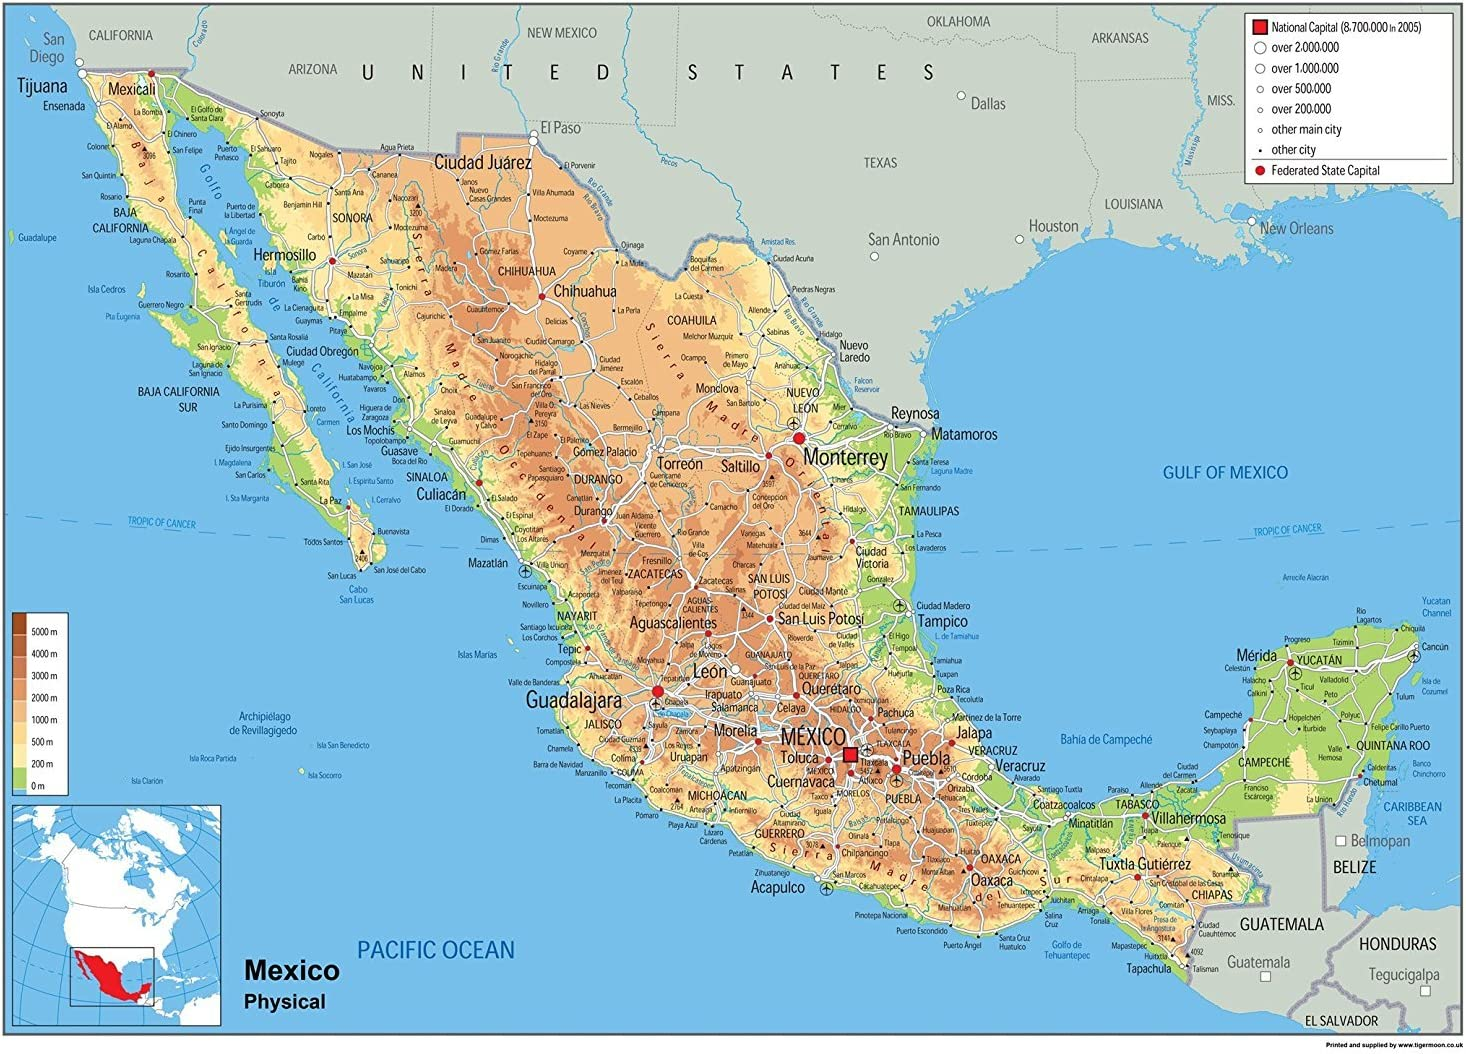 Cartina Del Messico Politica.Mexico Planisfero Fisico Carta Plastificata Ga A1 Size 59 4 X 84 1 Cm Amazon It Cancelleria E Prodotti Per Ufficio